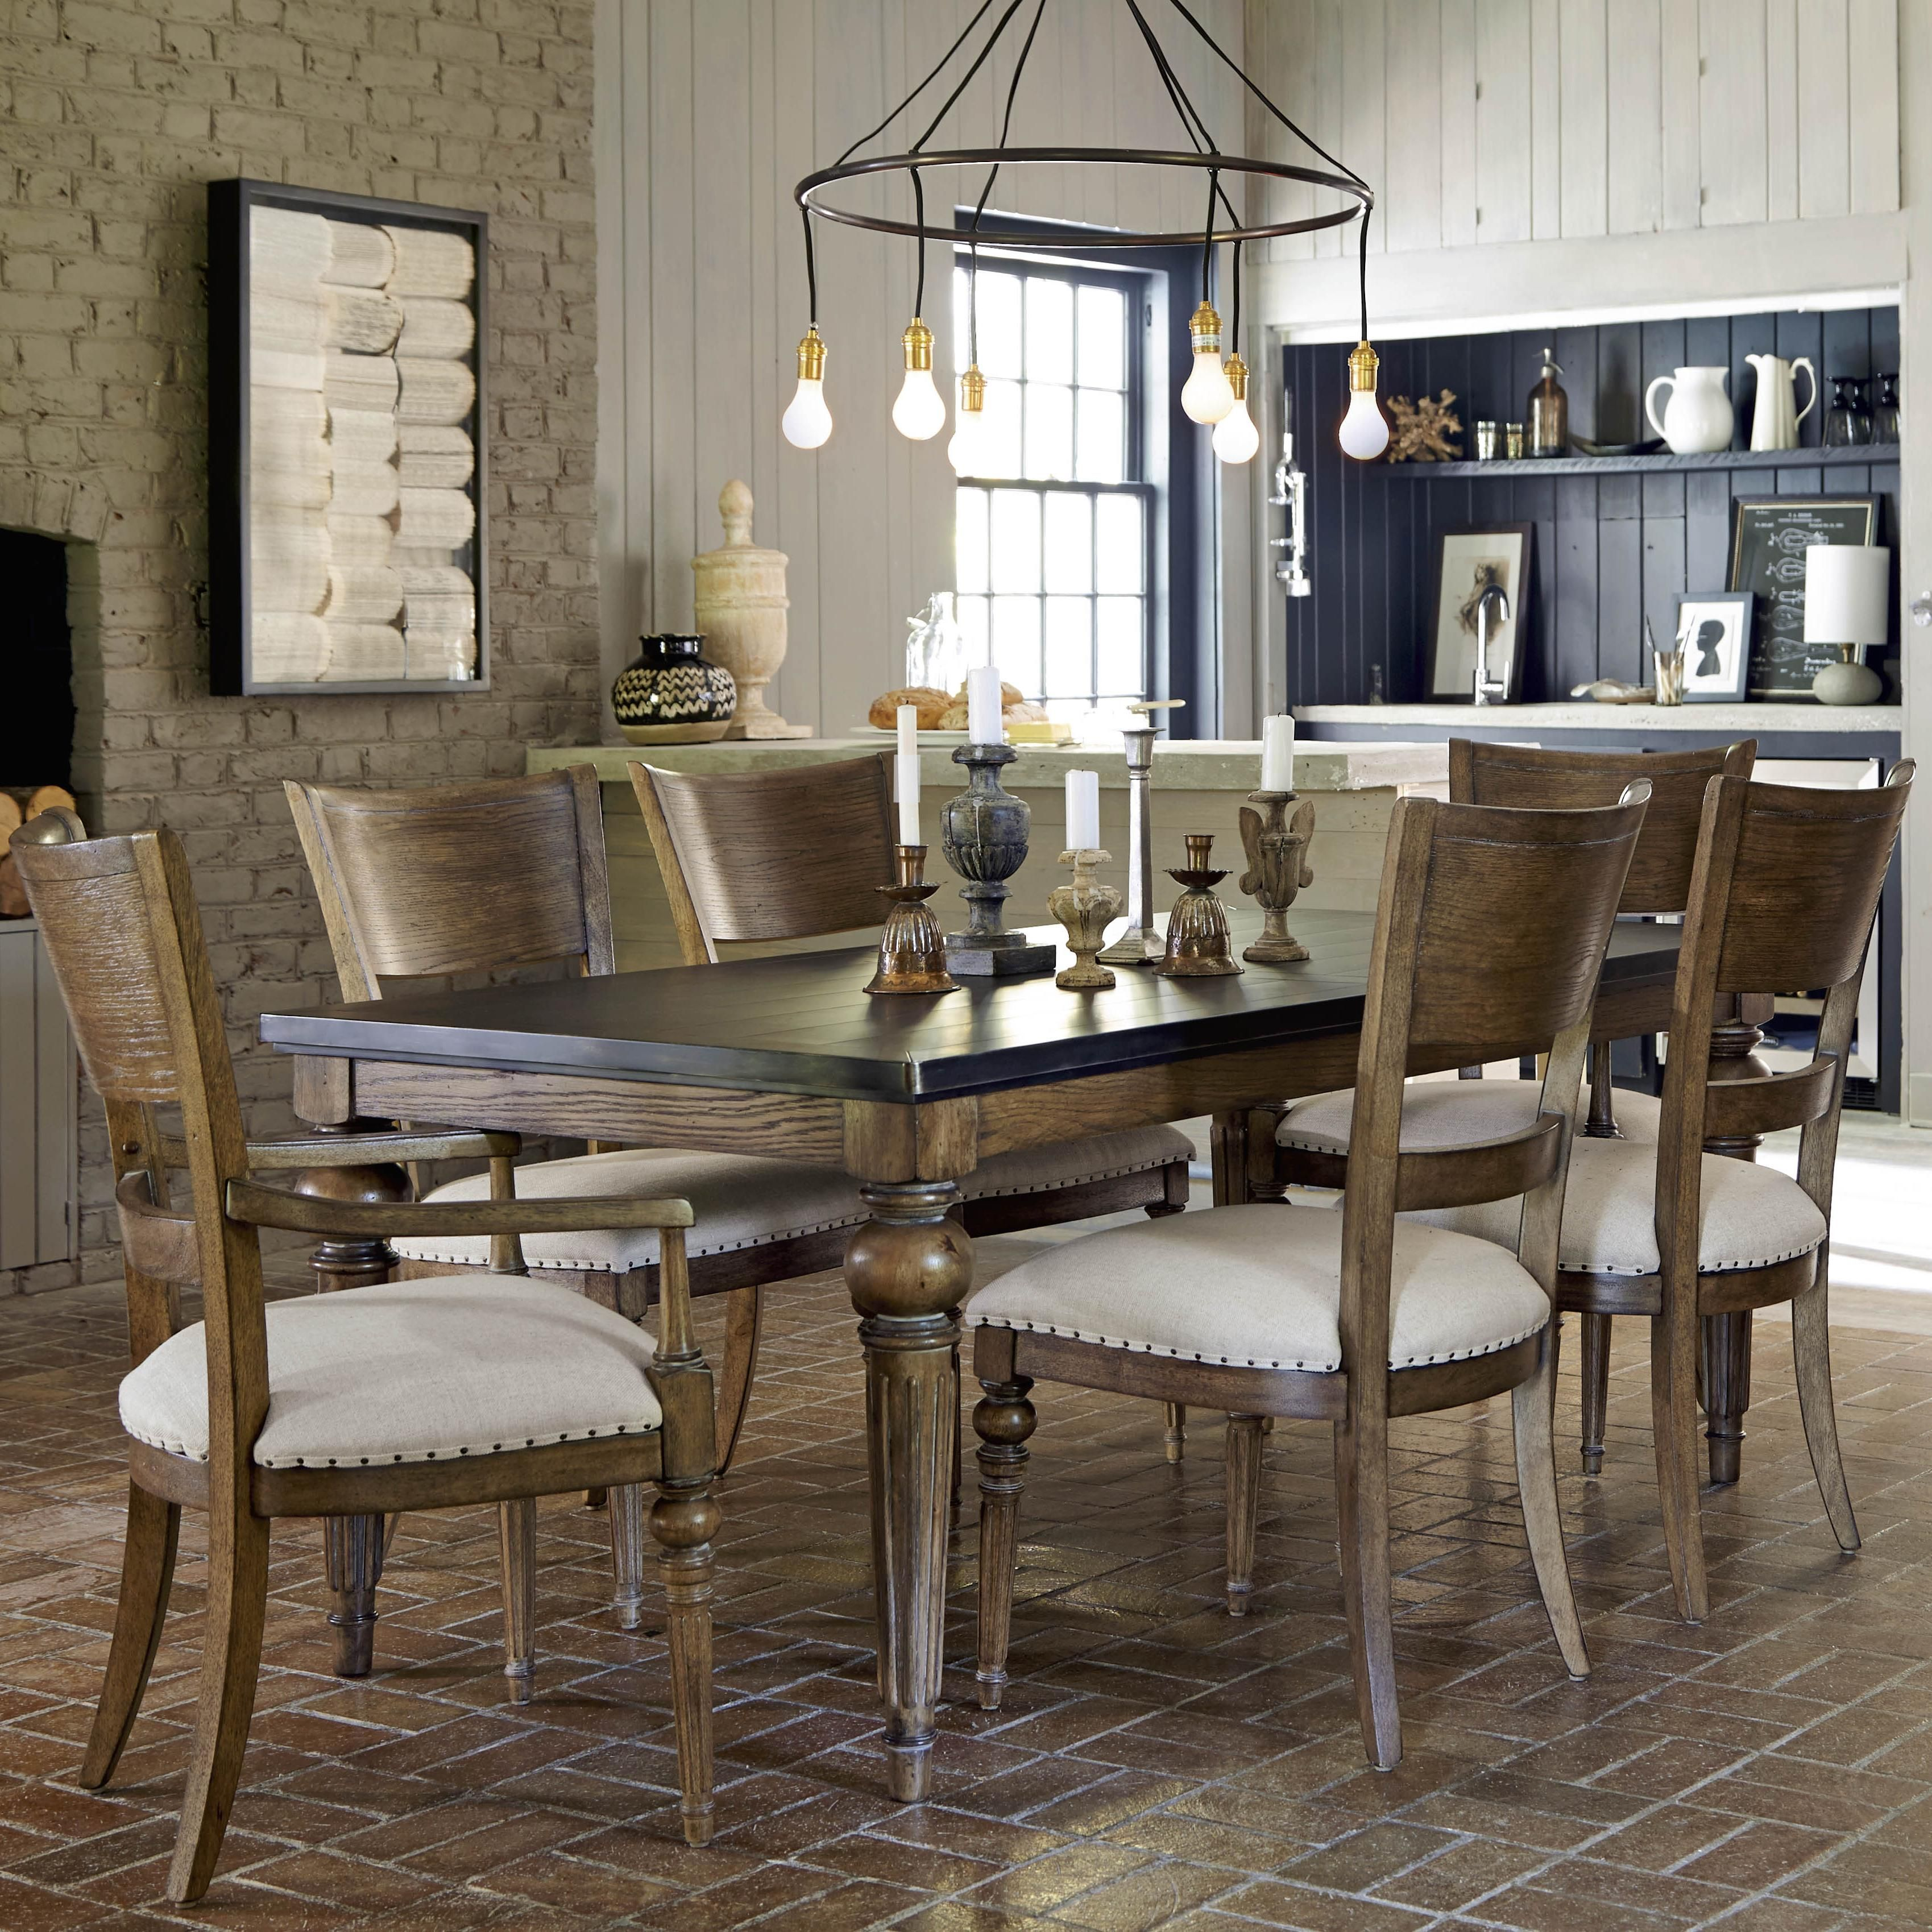 Universal New Bohemian 7 Piece Dining Set With Coffee House Table   Zaku0027s  Fine Furniture   Dining 7 (or More) Piece Set Tri Cities   Johnson City And  ...